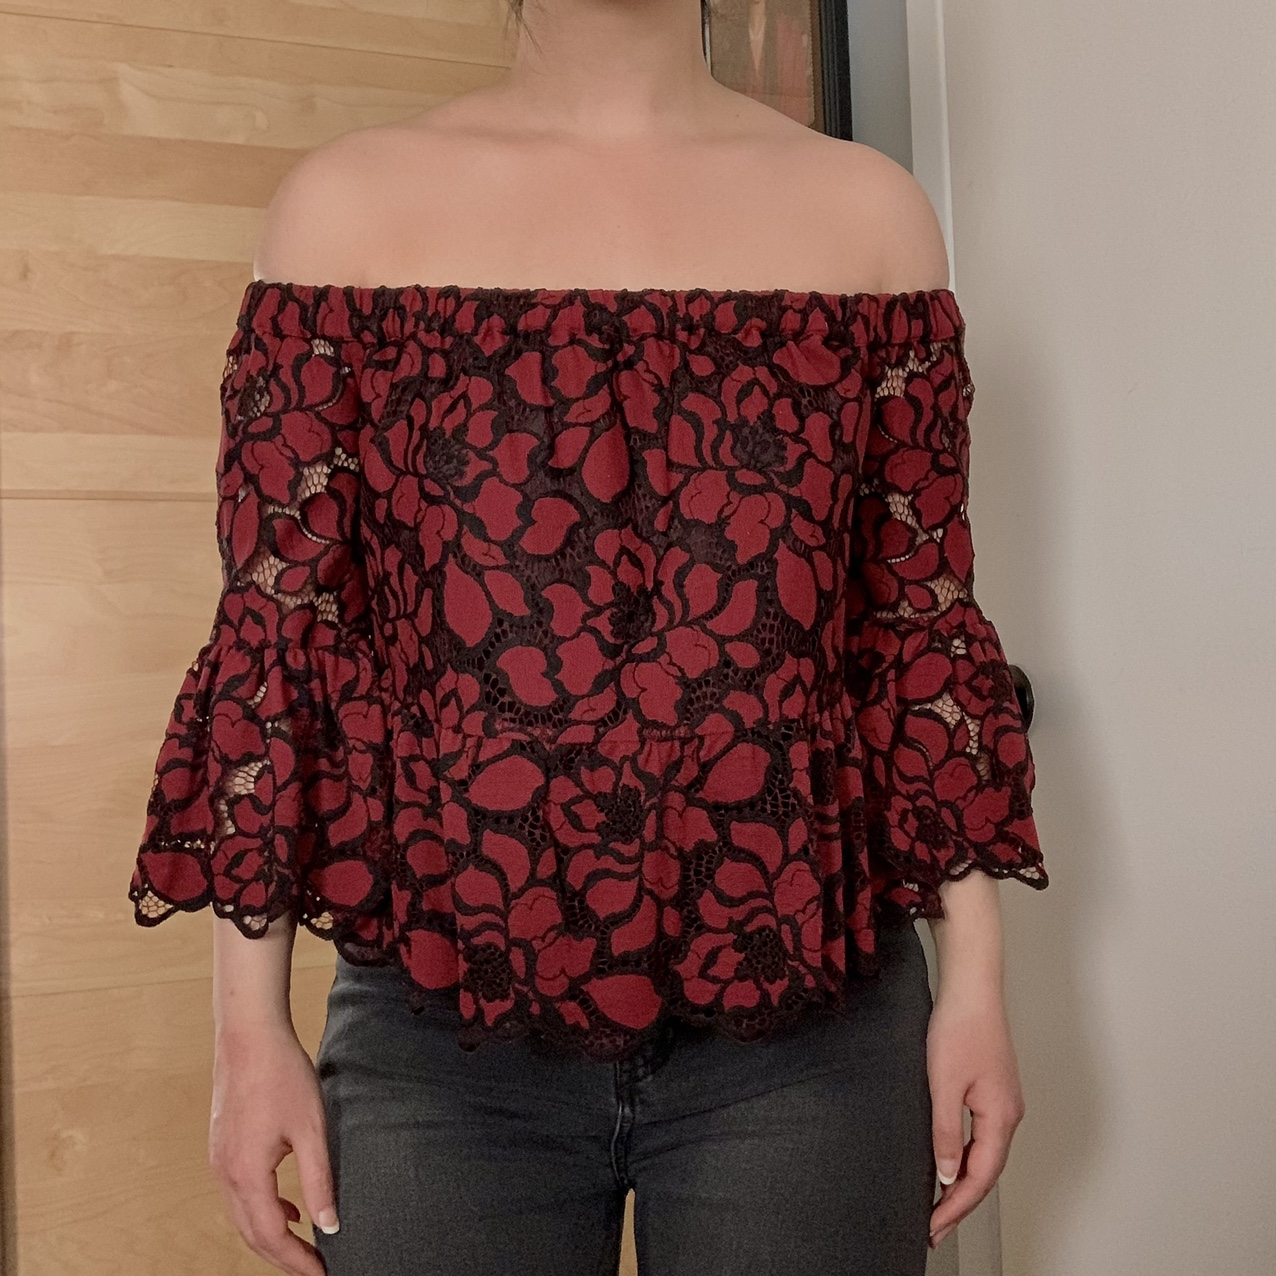 Product Image 1 - Likely $150 Stockton #Embroidered #Lace